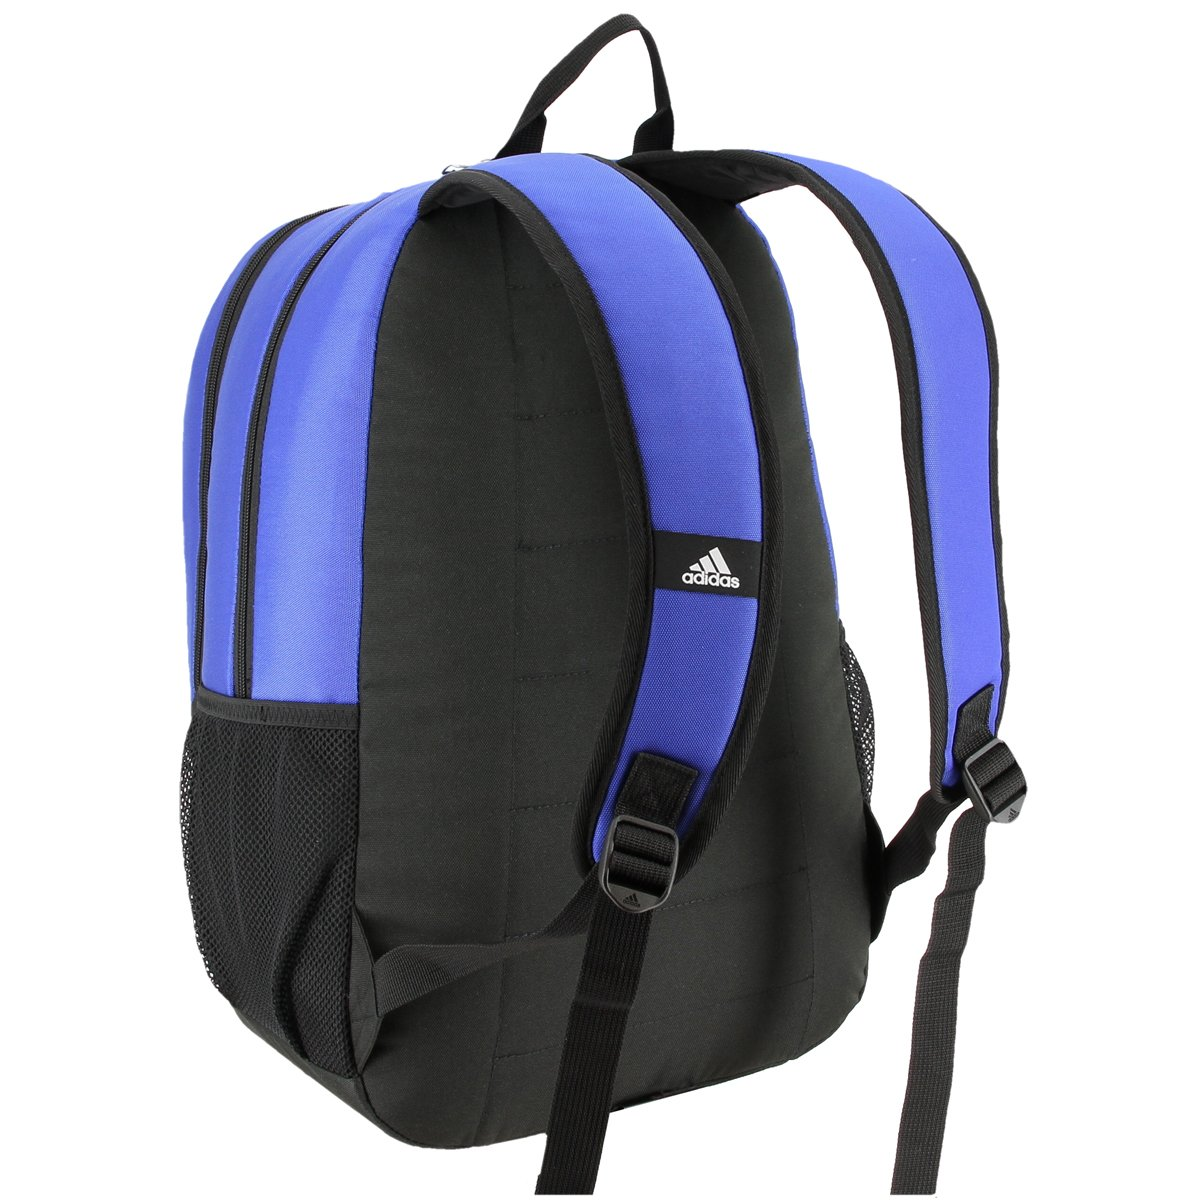 ab99ea869d6 adidas Unisex Striker II Team Backpack - 5142723-P   Sports   Fitness  Features   Sports   Outdoors - tibs